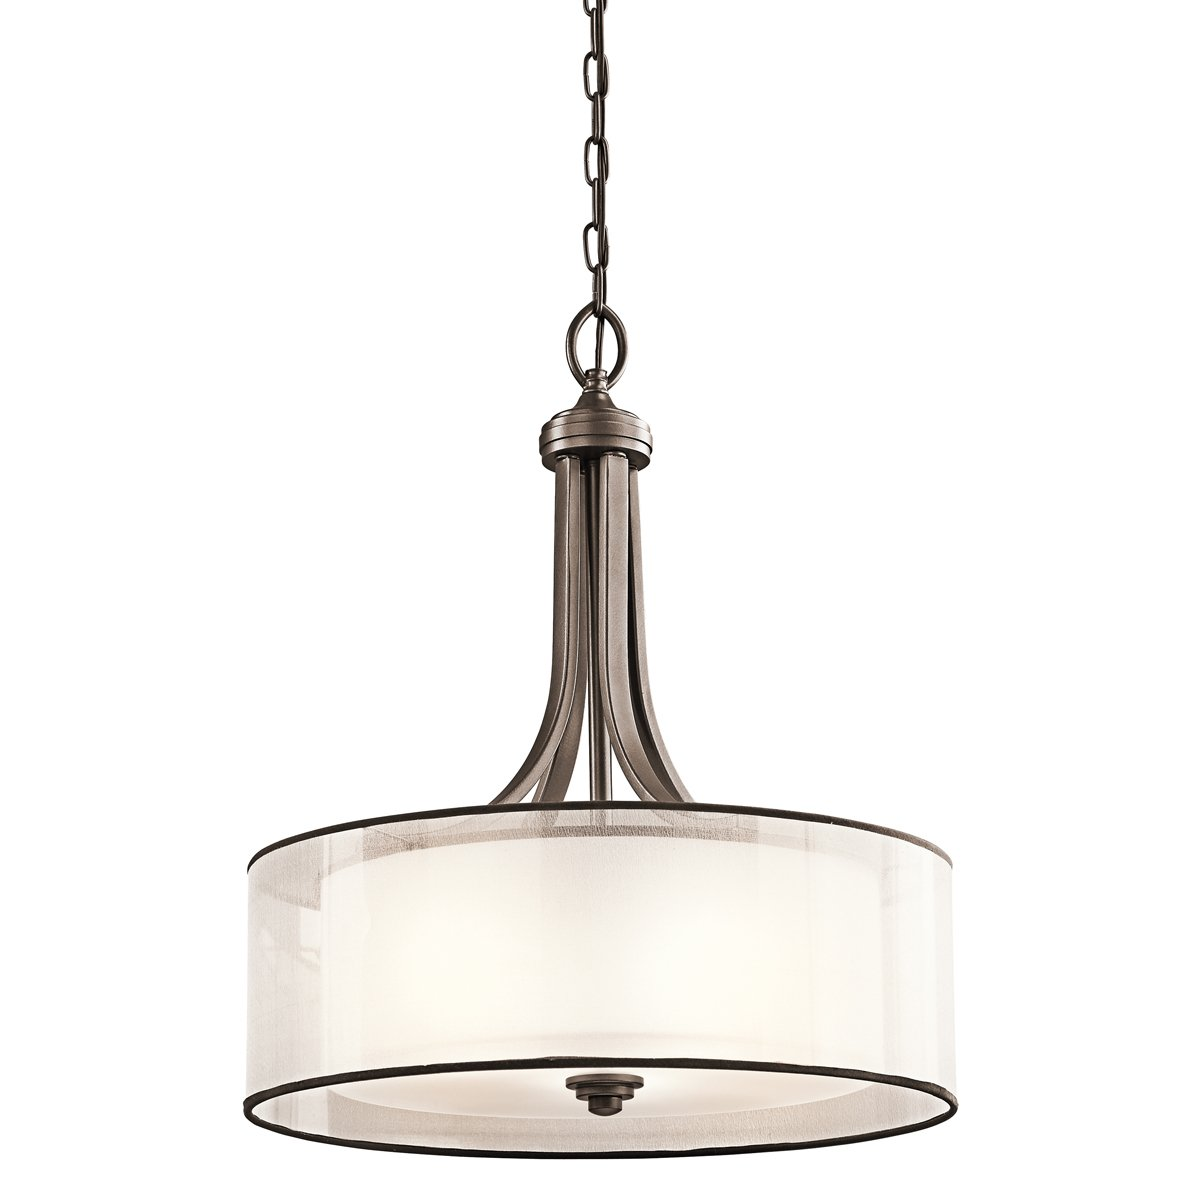 Wonderful Kichler 42385MIZ Four Light Pendant - Ceiling Pendant Fixtures  GE63